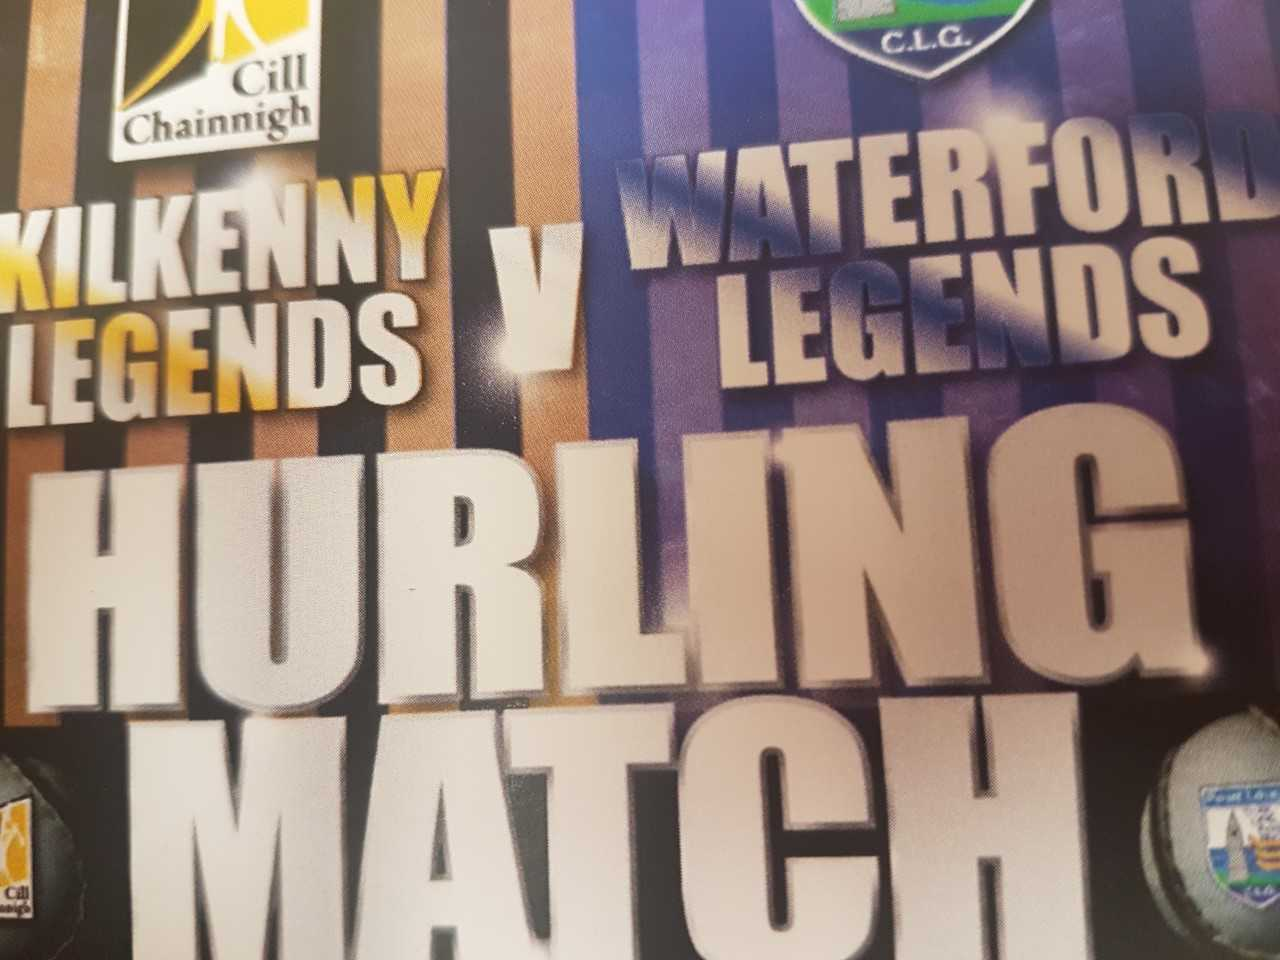 Charity hurling game between Waterford and Kilkenny legends takes place in Kilmacow this evening